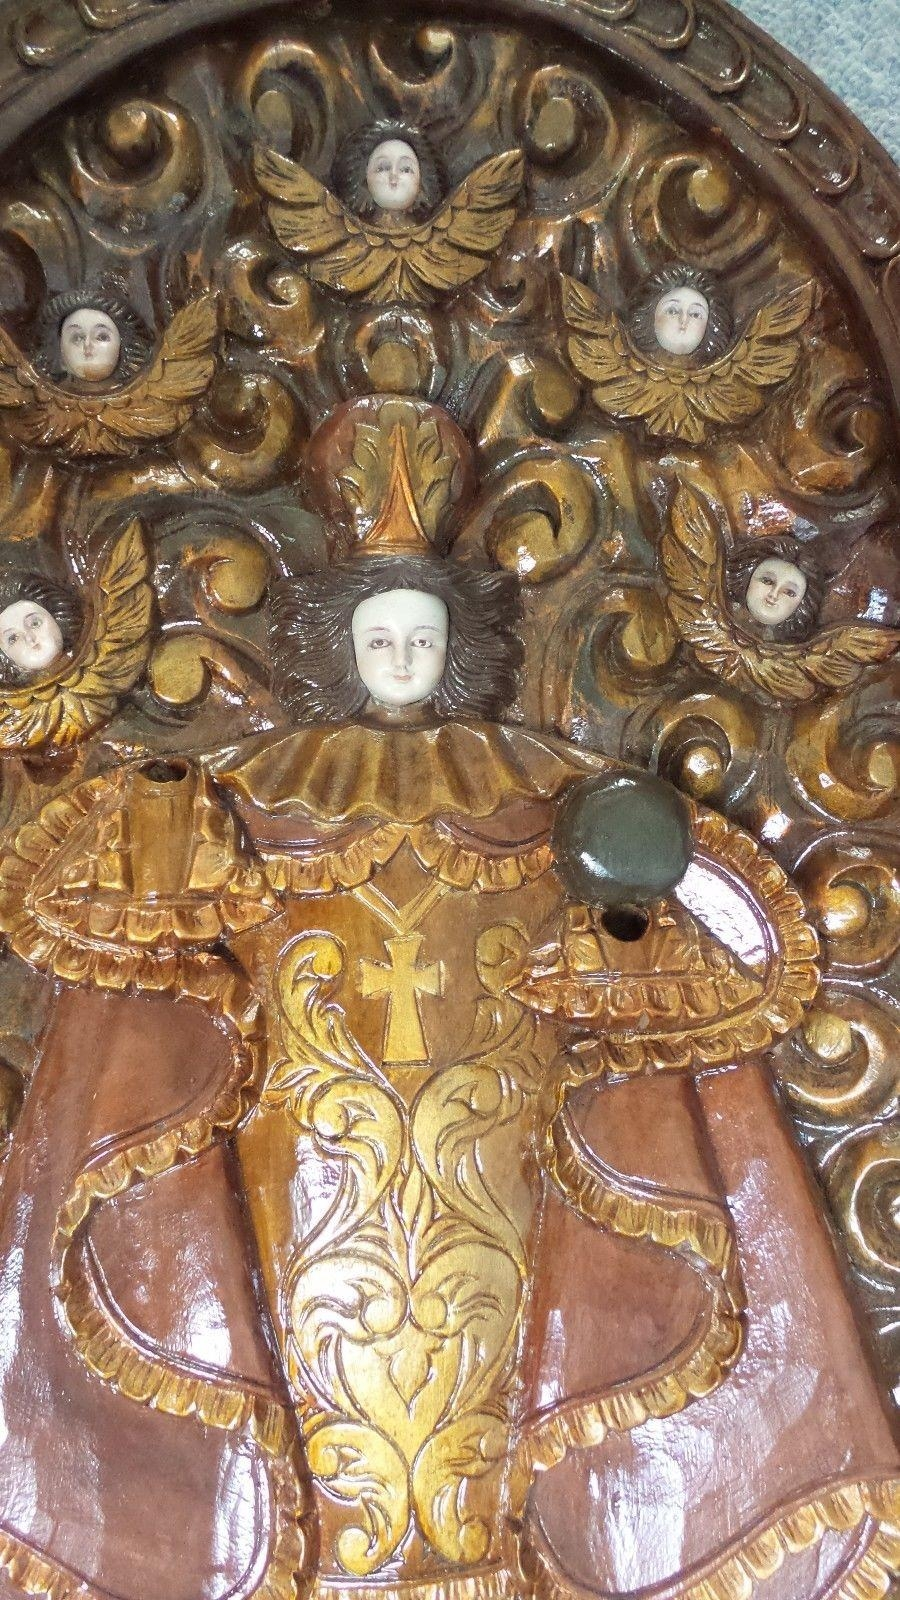 Antique Wood Carved Religious Icon Rare Hand Made Italian Wall Art Pertaining To Italian Wood Wall Art (Image 2 of 20)